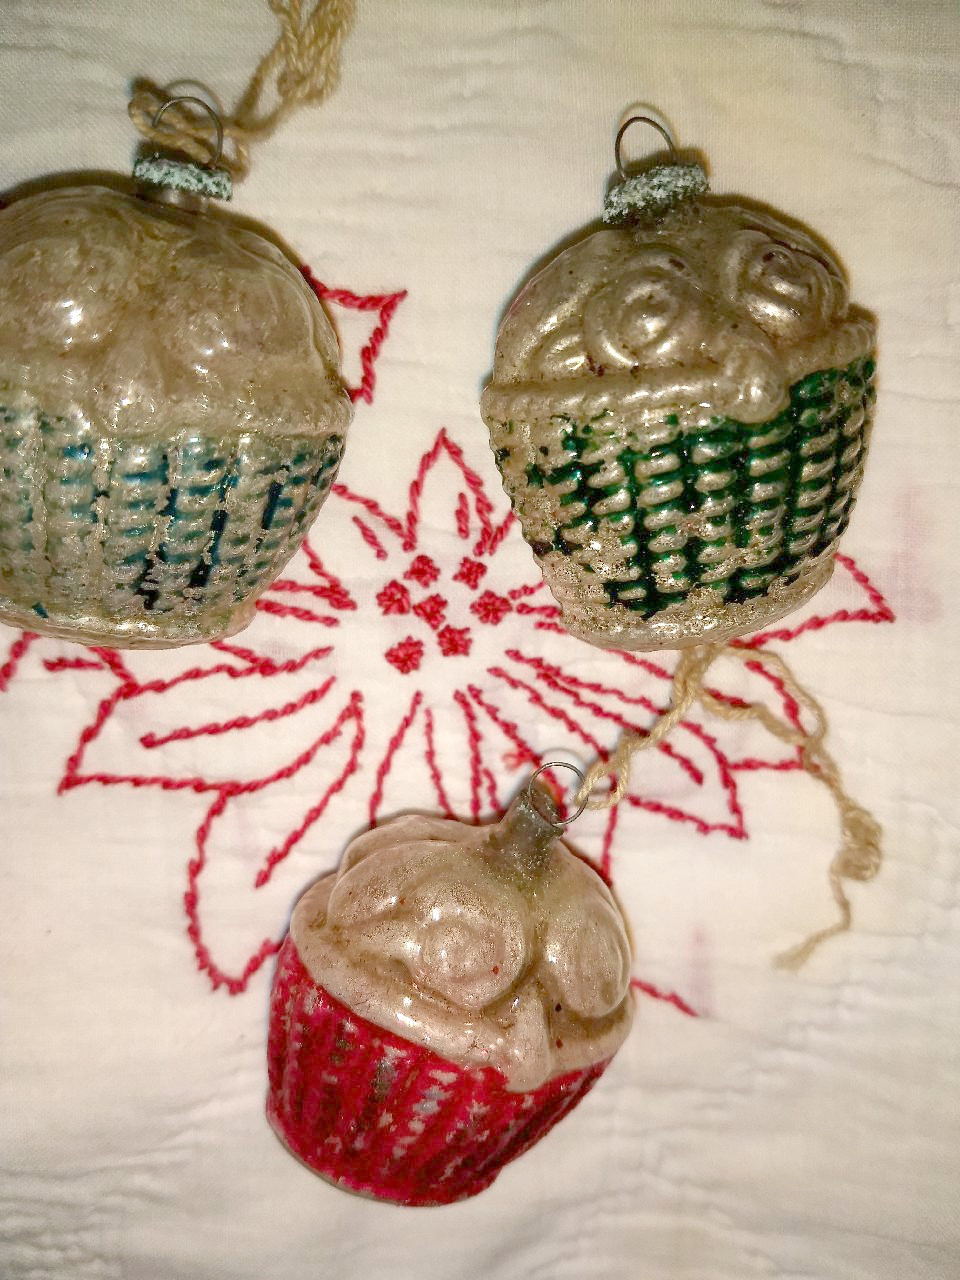 5 Antique Glass Flower Basket Christmas Ornament Vintage 1920's